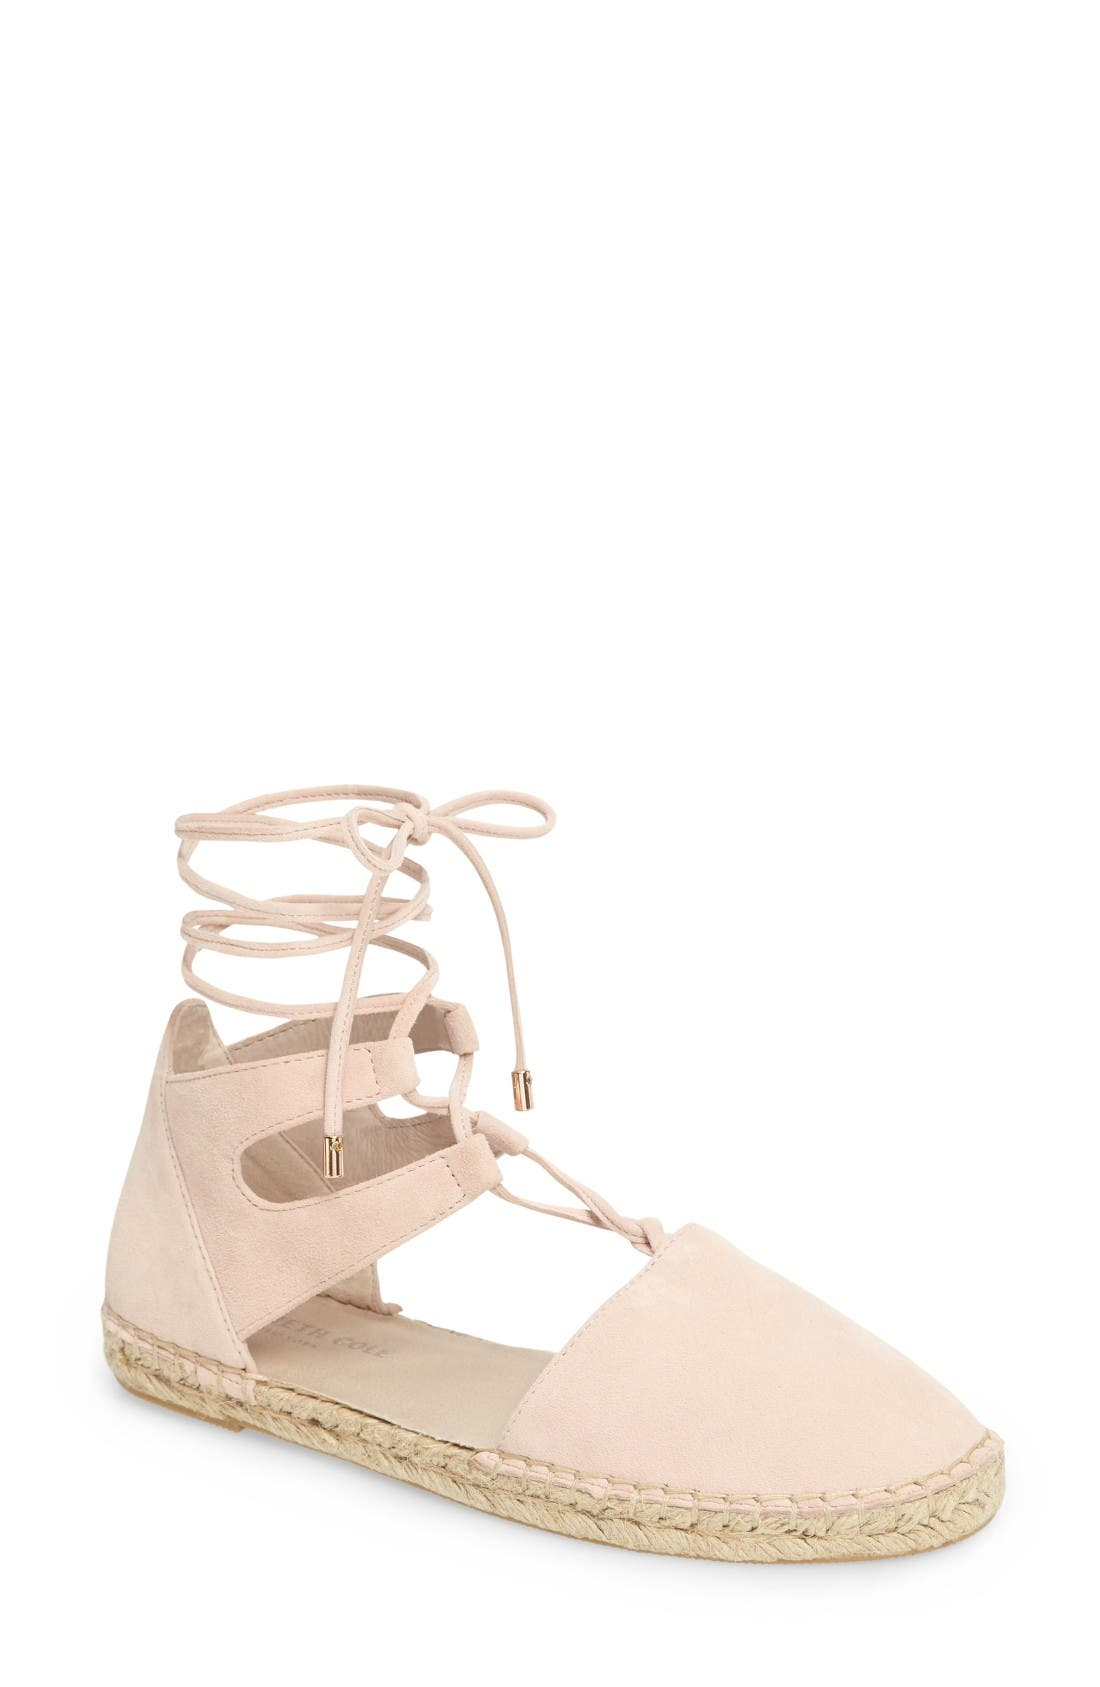 Alternate Image 1 Selected - Kenneth Cole New York Beverly Espadrille Flat (Women)